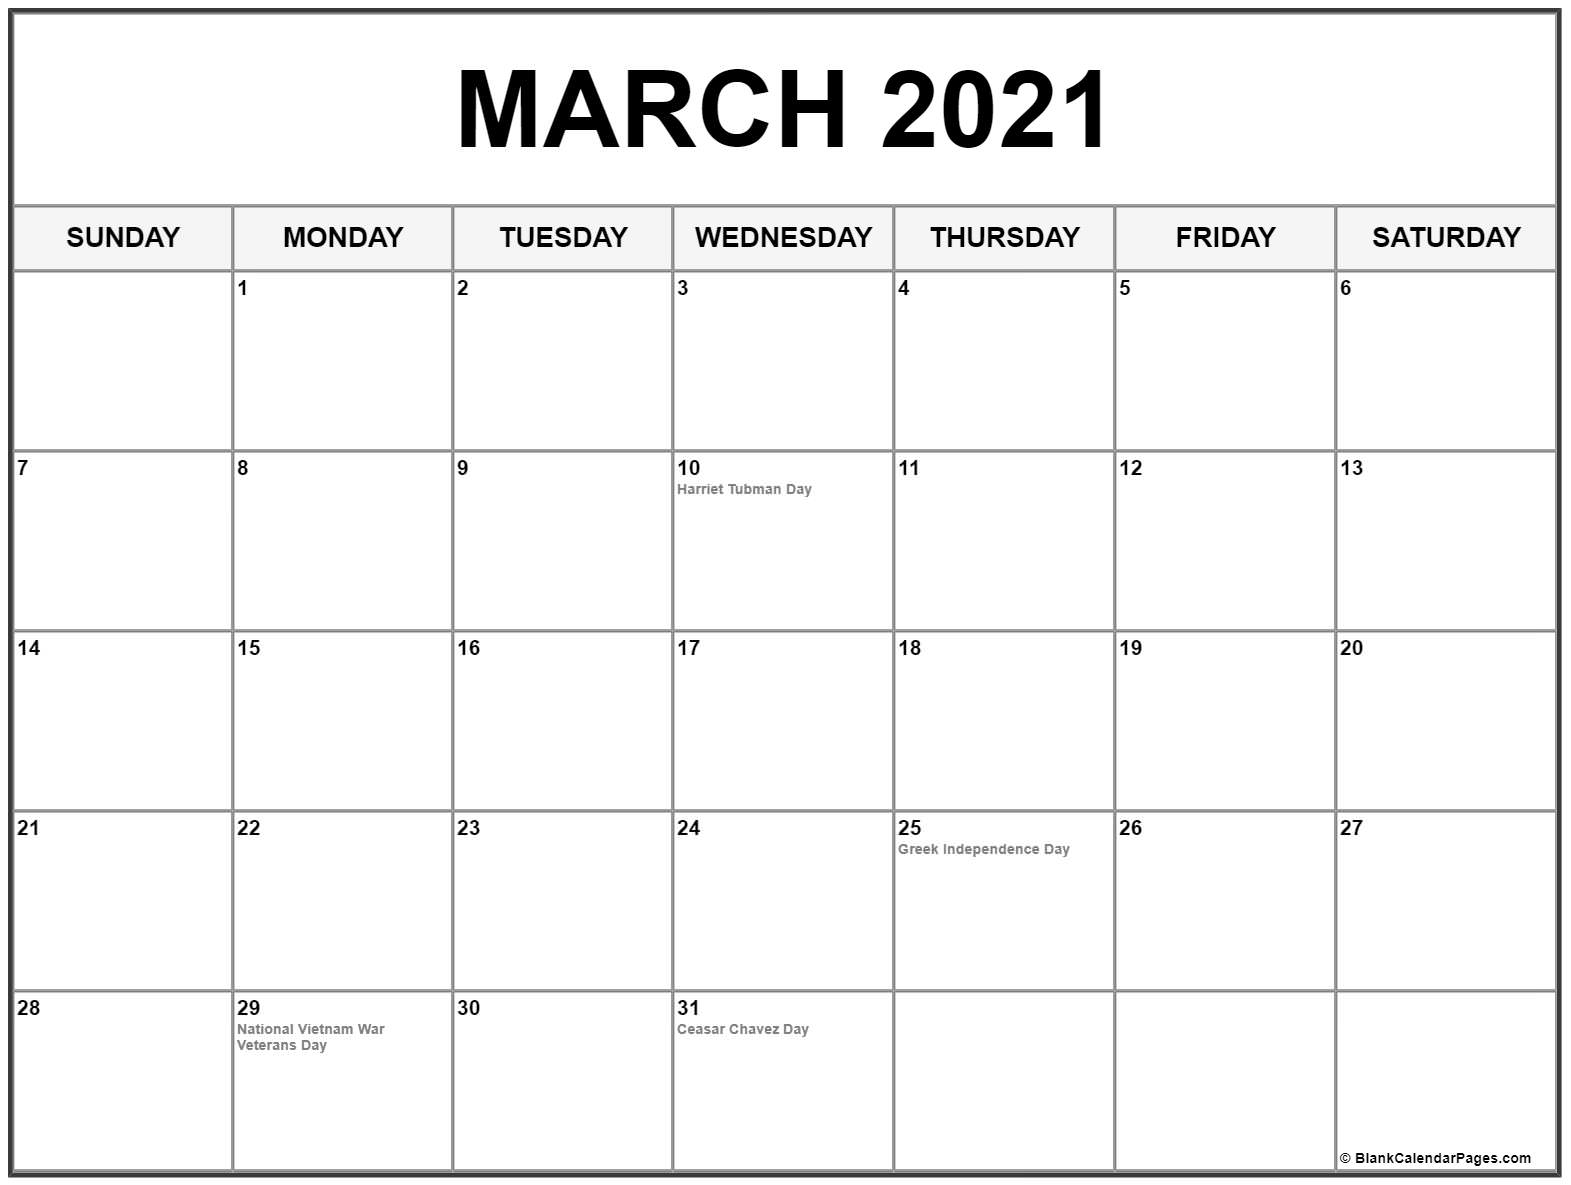 March 2021 Calendar With Holidays USA